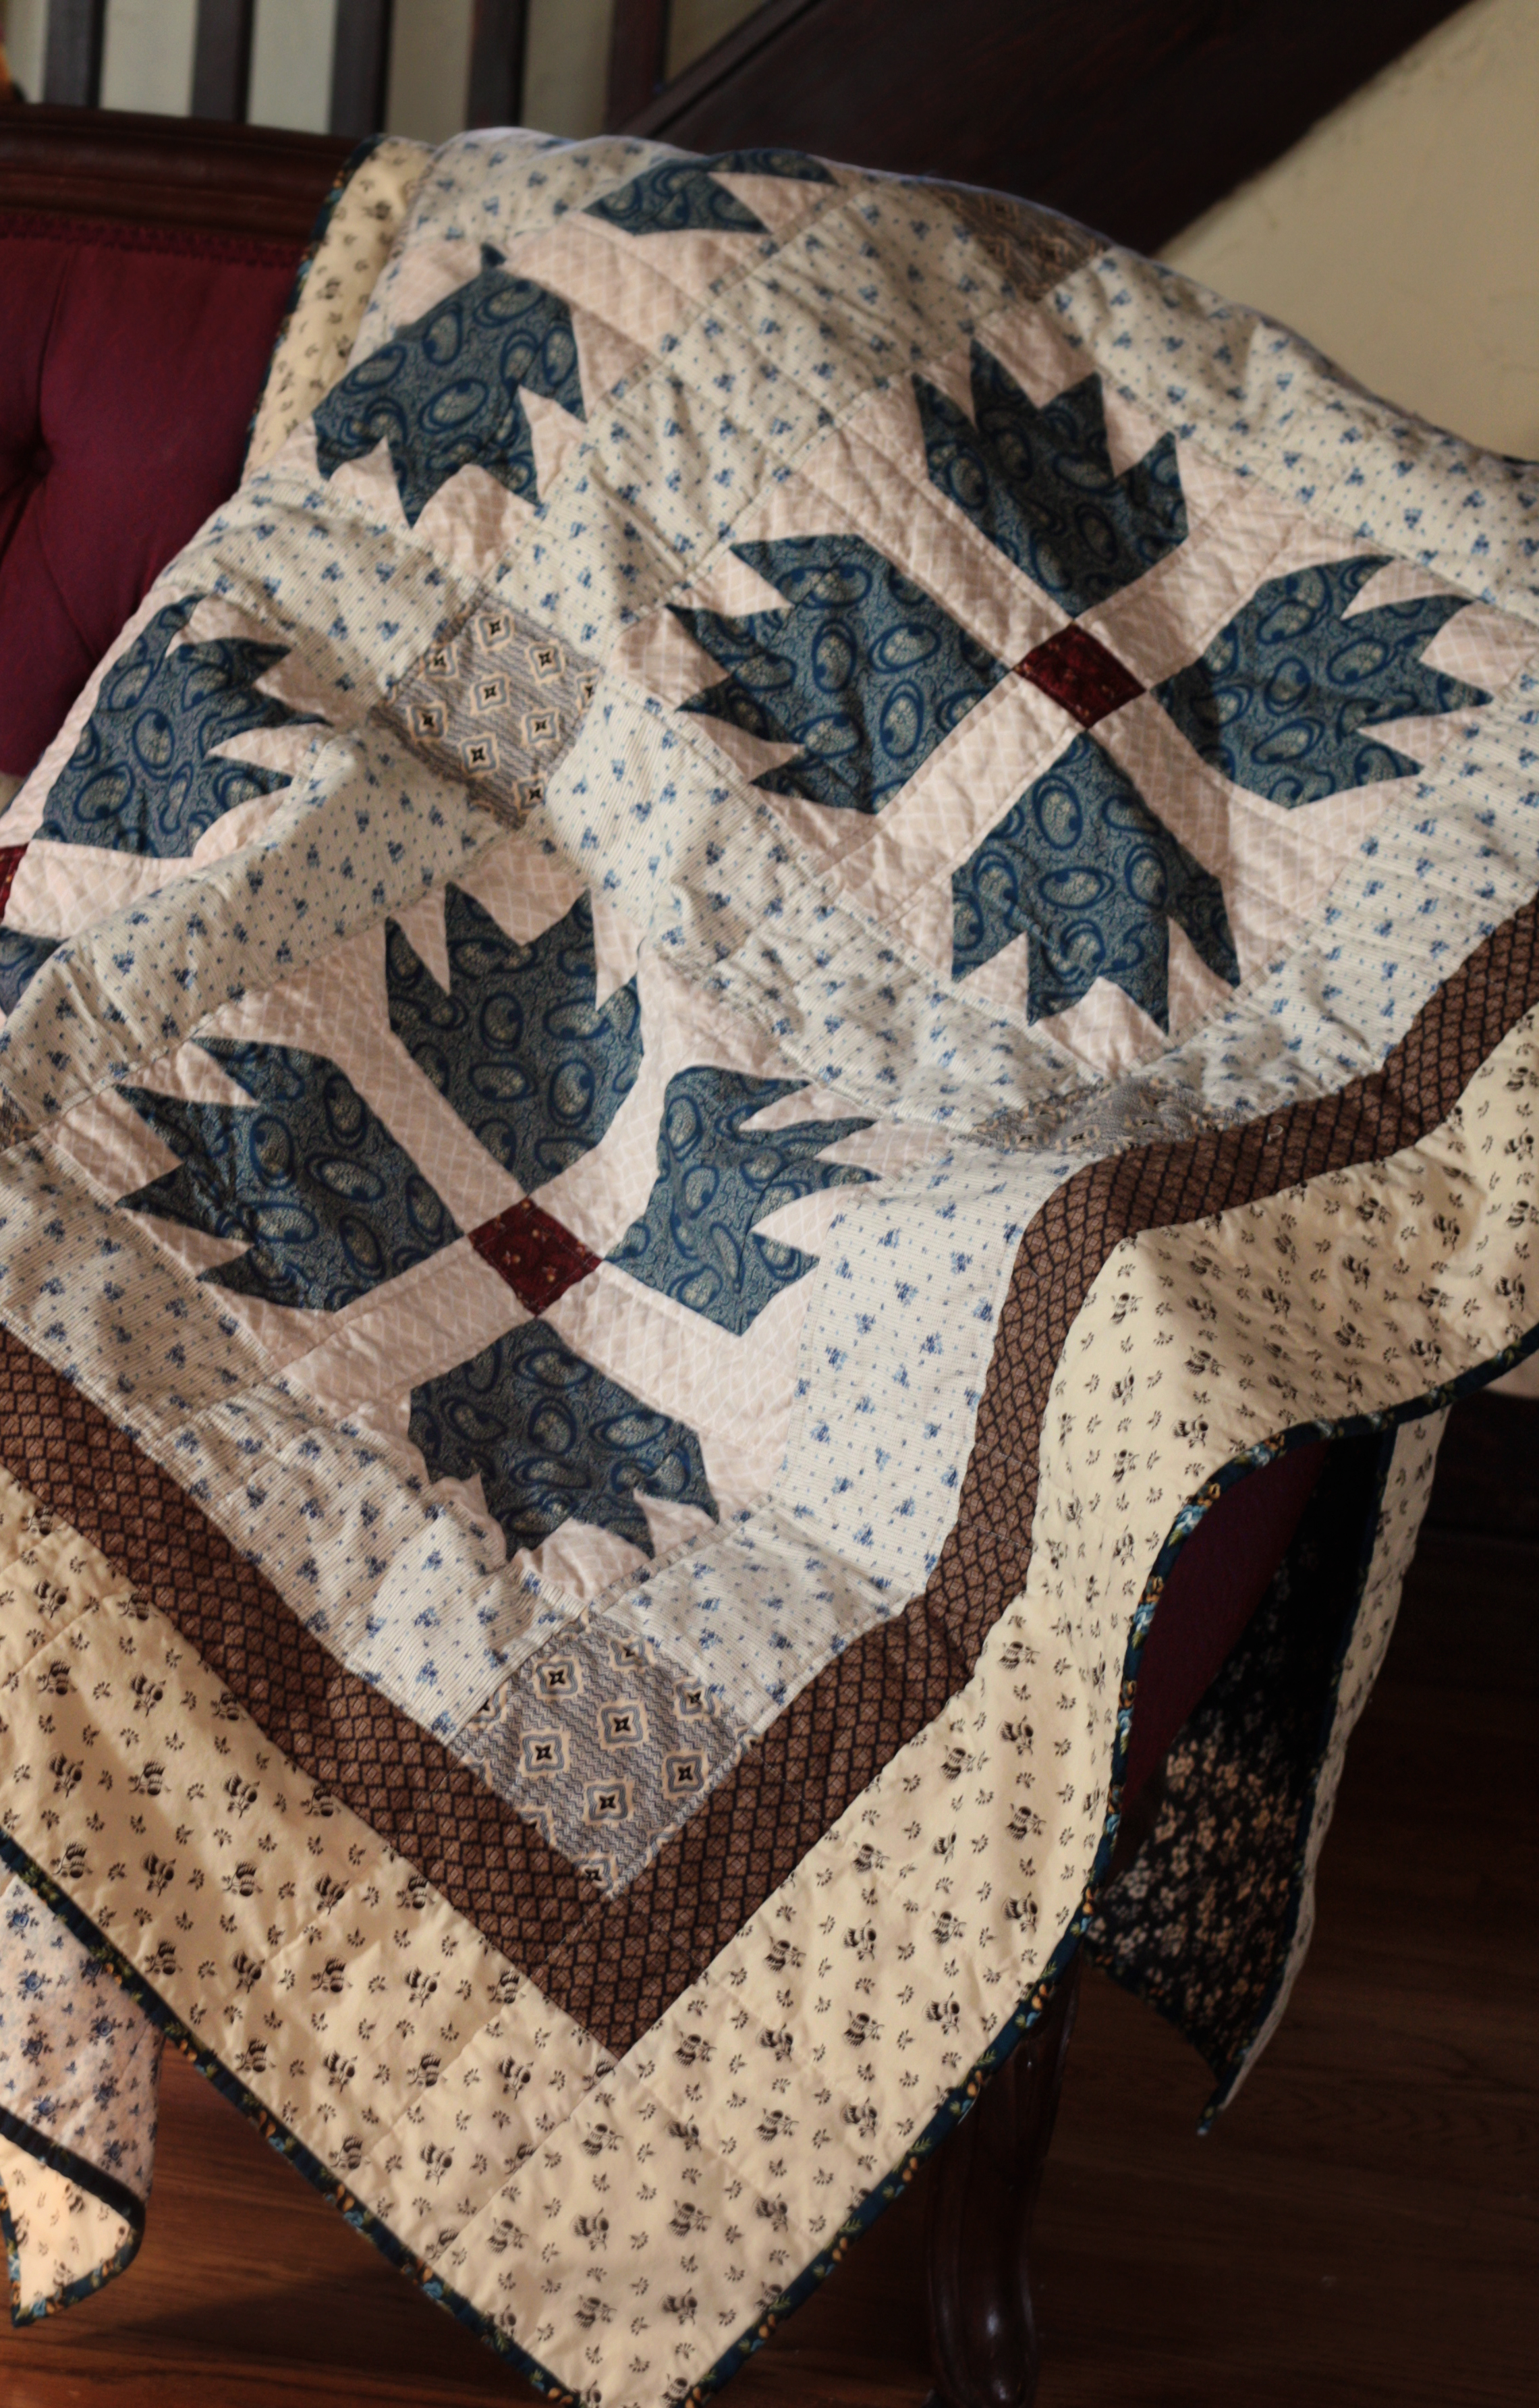 12-12 bear paw quilt